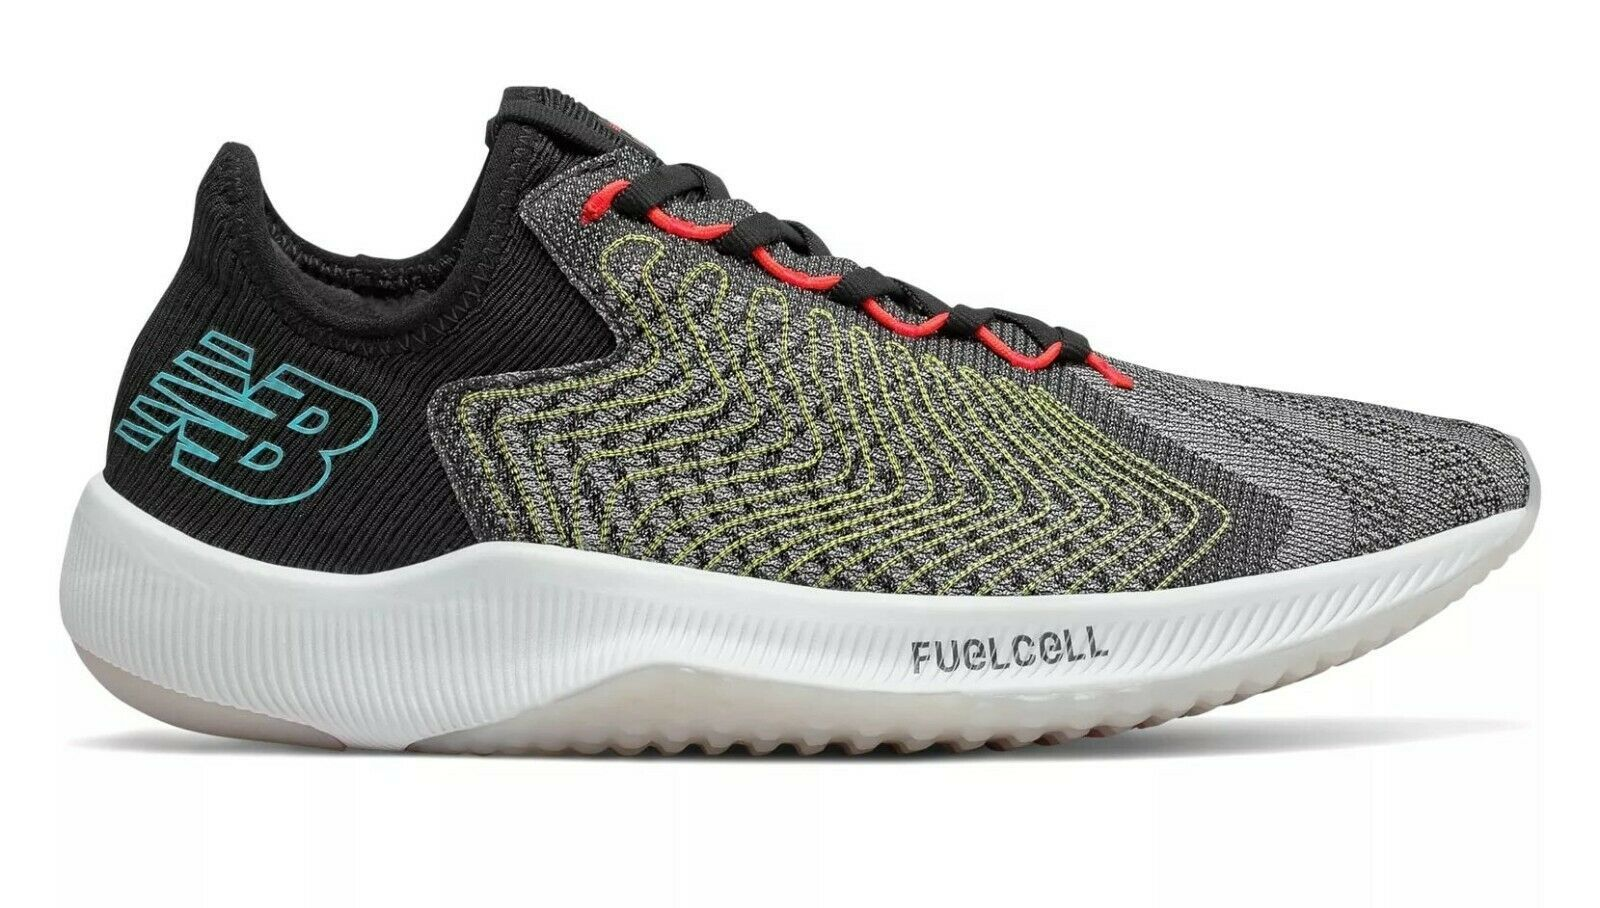 New Balance FuelCell Rebel 5280 Racing Shoes Jogging Running Cushion Lightweight